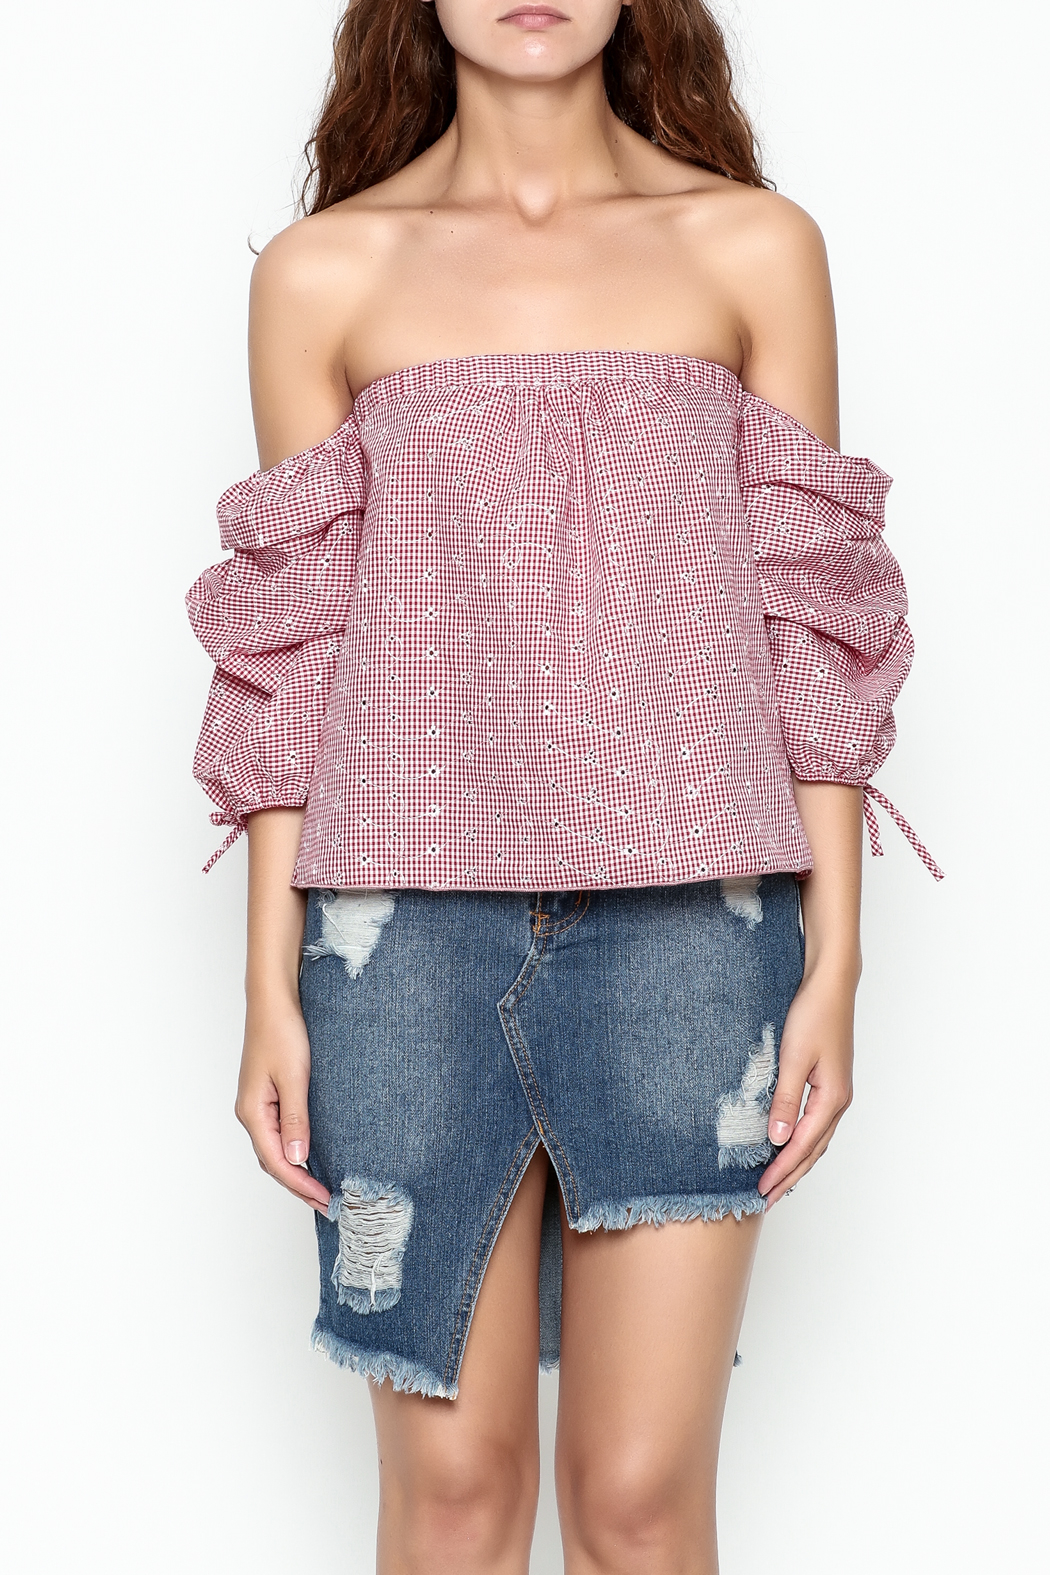 hummingbird Gingham Top - Front Cropped Image